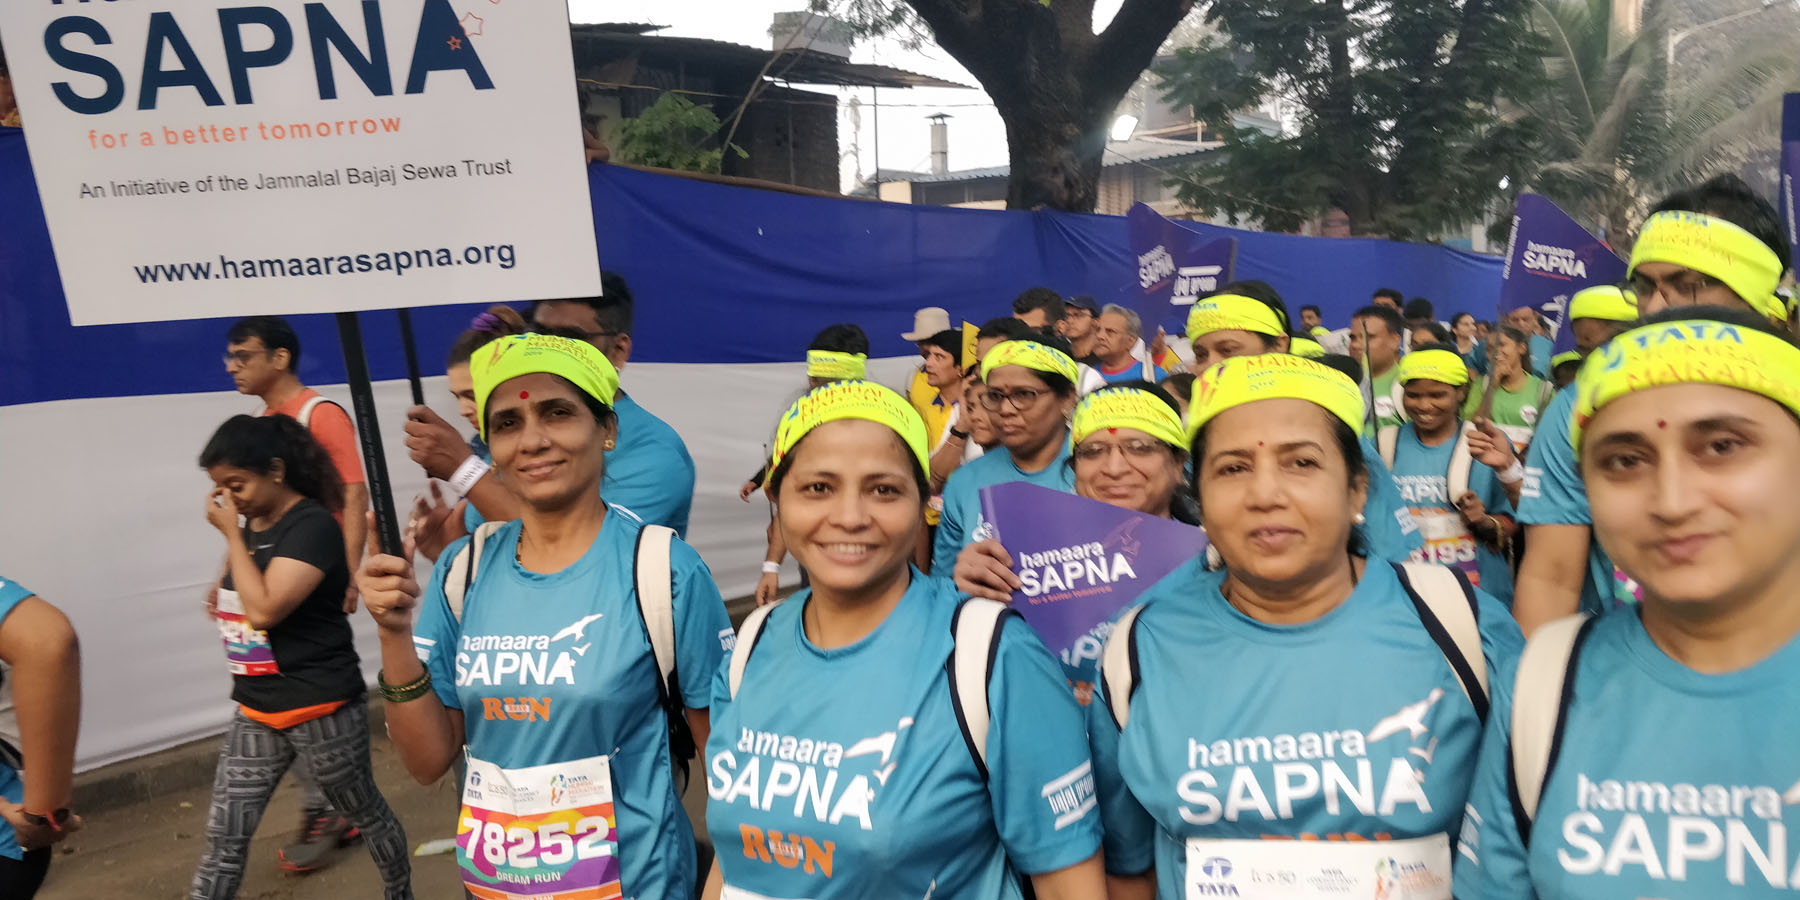 Project Director, Staff and beneficiaries of Hamaara Sapna doing the dream run. Happy hearts and smiling faces